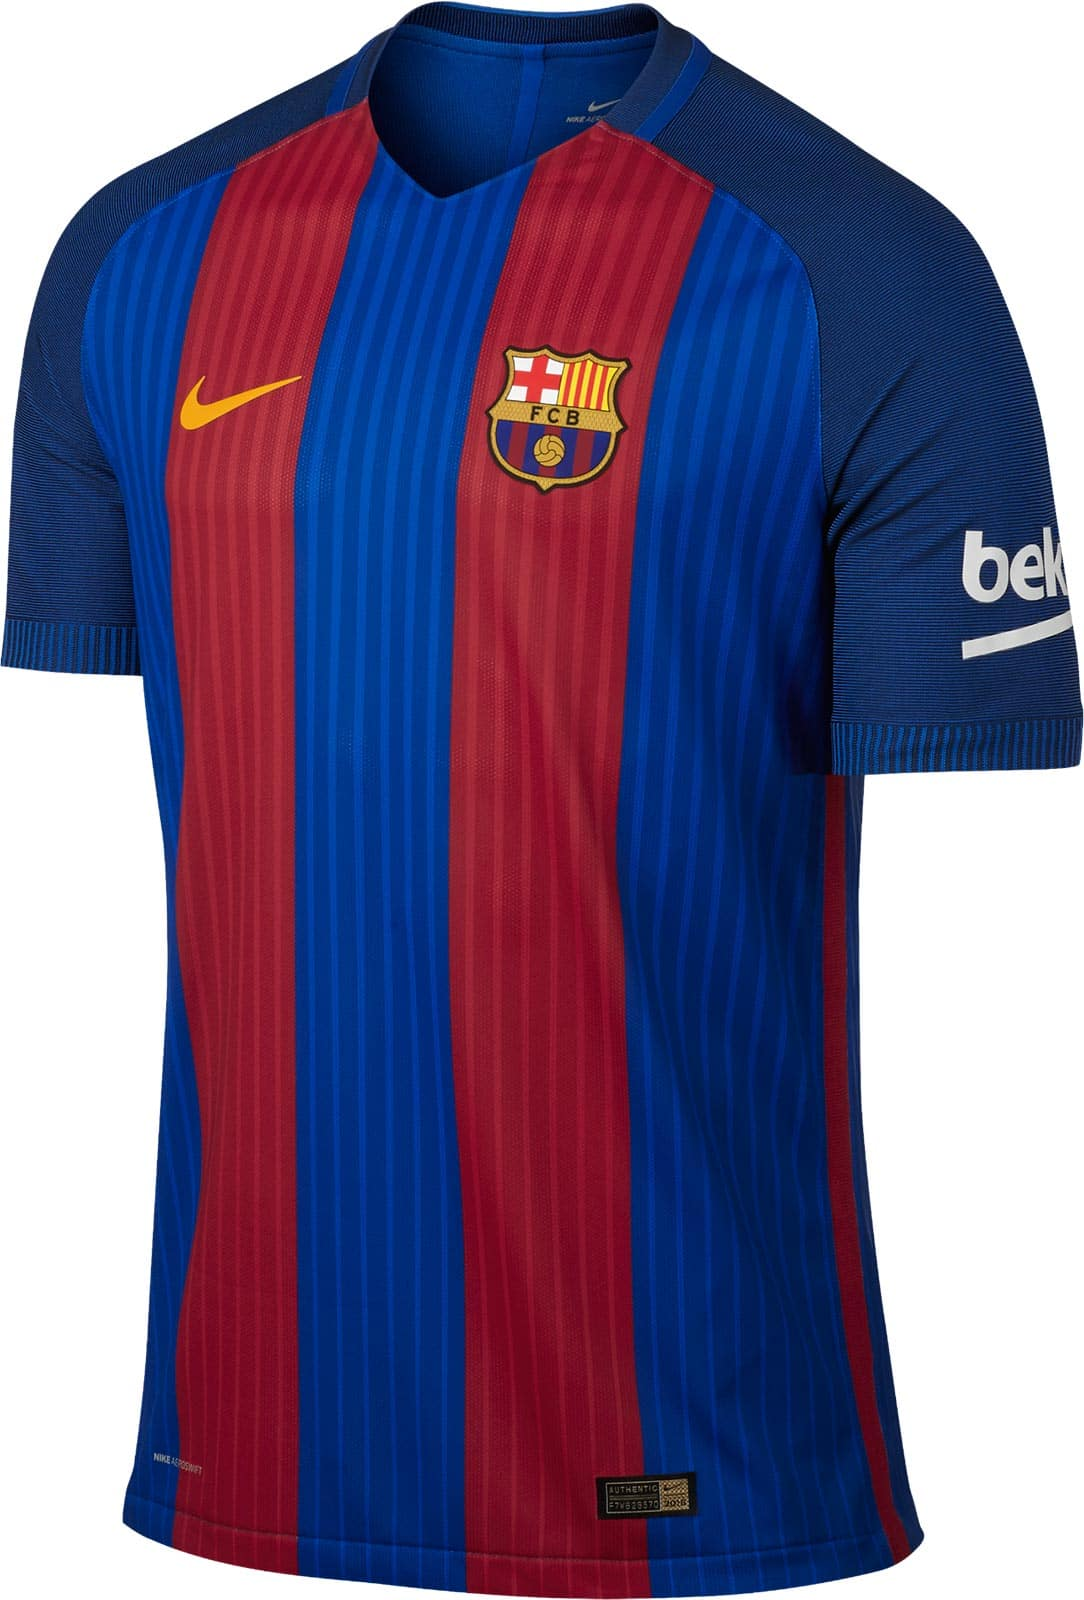 FC Barcelona Soccer Jersey: $15 at Dick's, In Store Only, YMMV